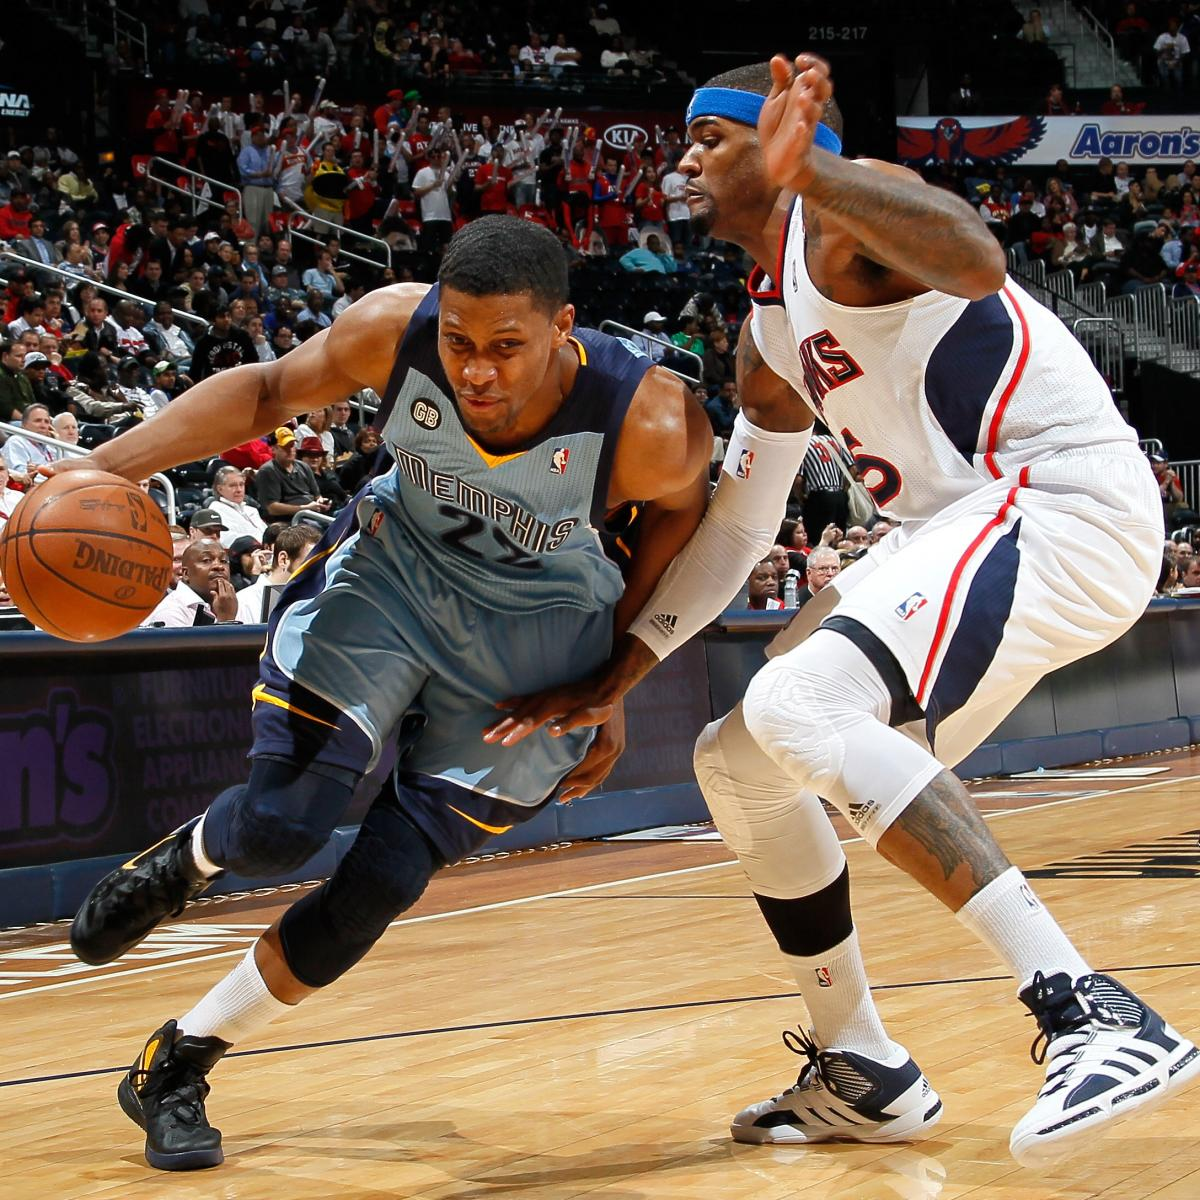 NBA Trade Rumors: Would Memphis Grizzlies Really Deal Rudy Gay? | Bleacher Report ...1200 x 1200